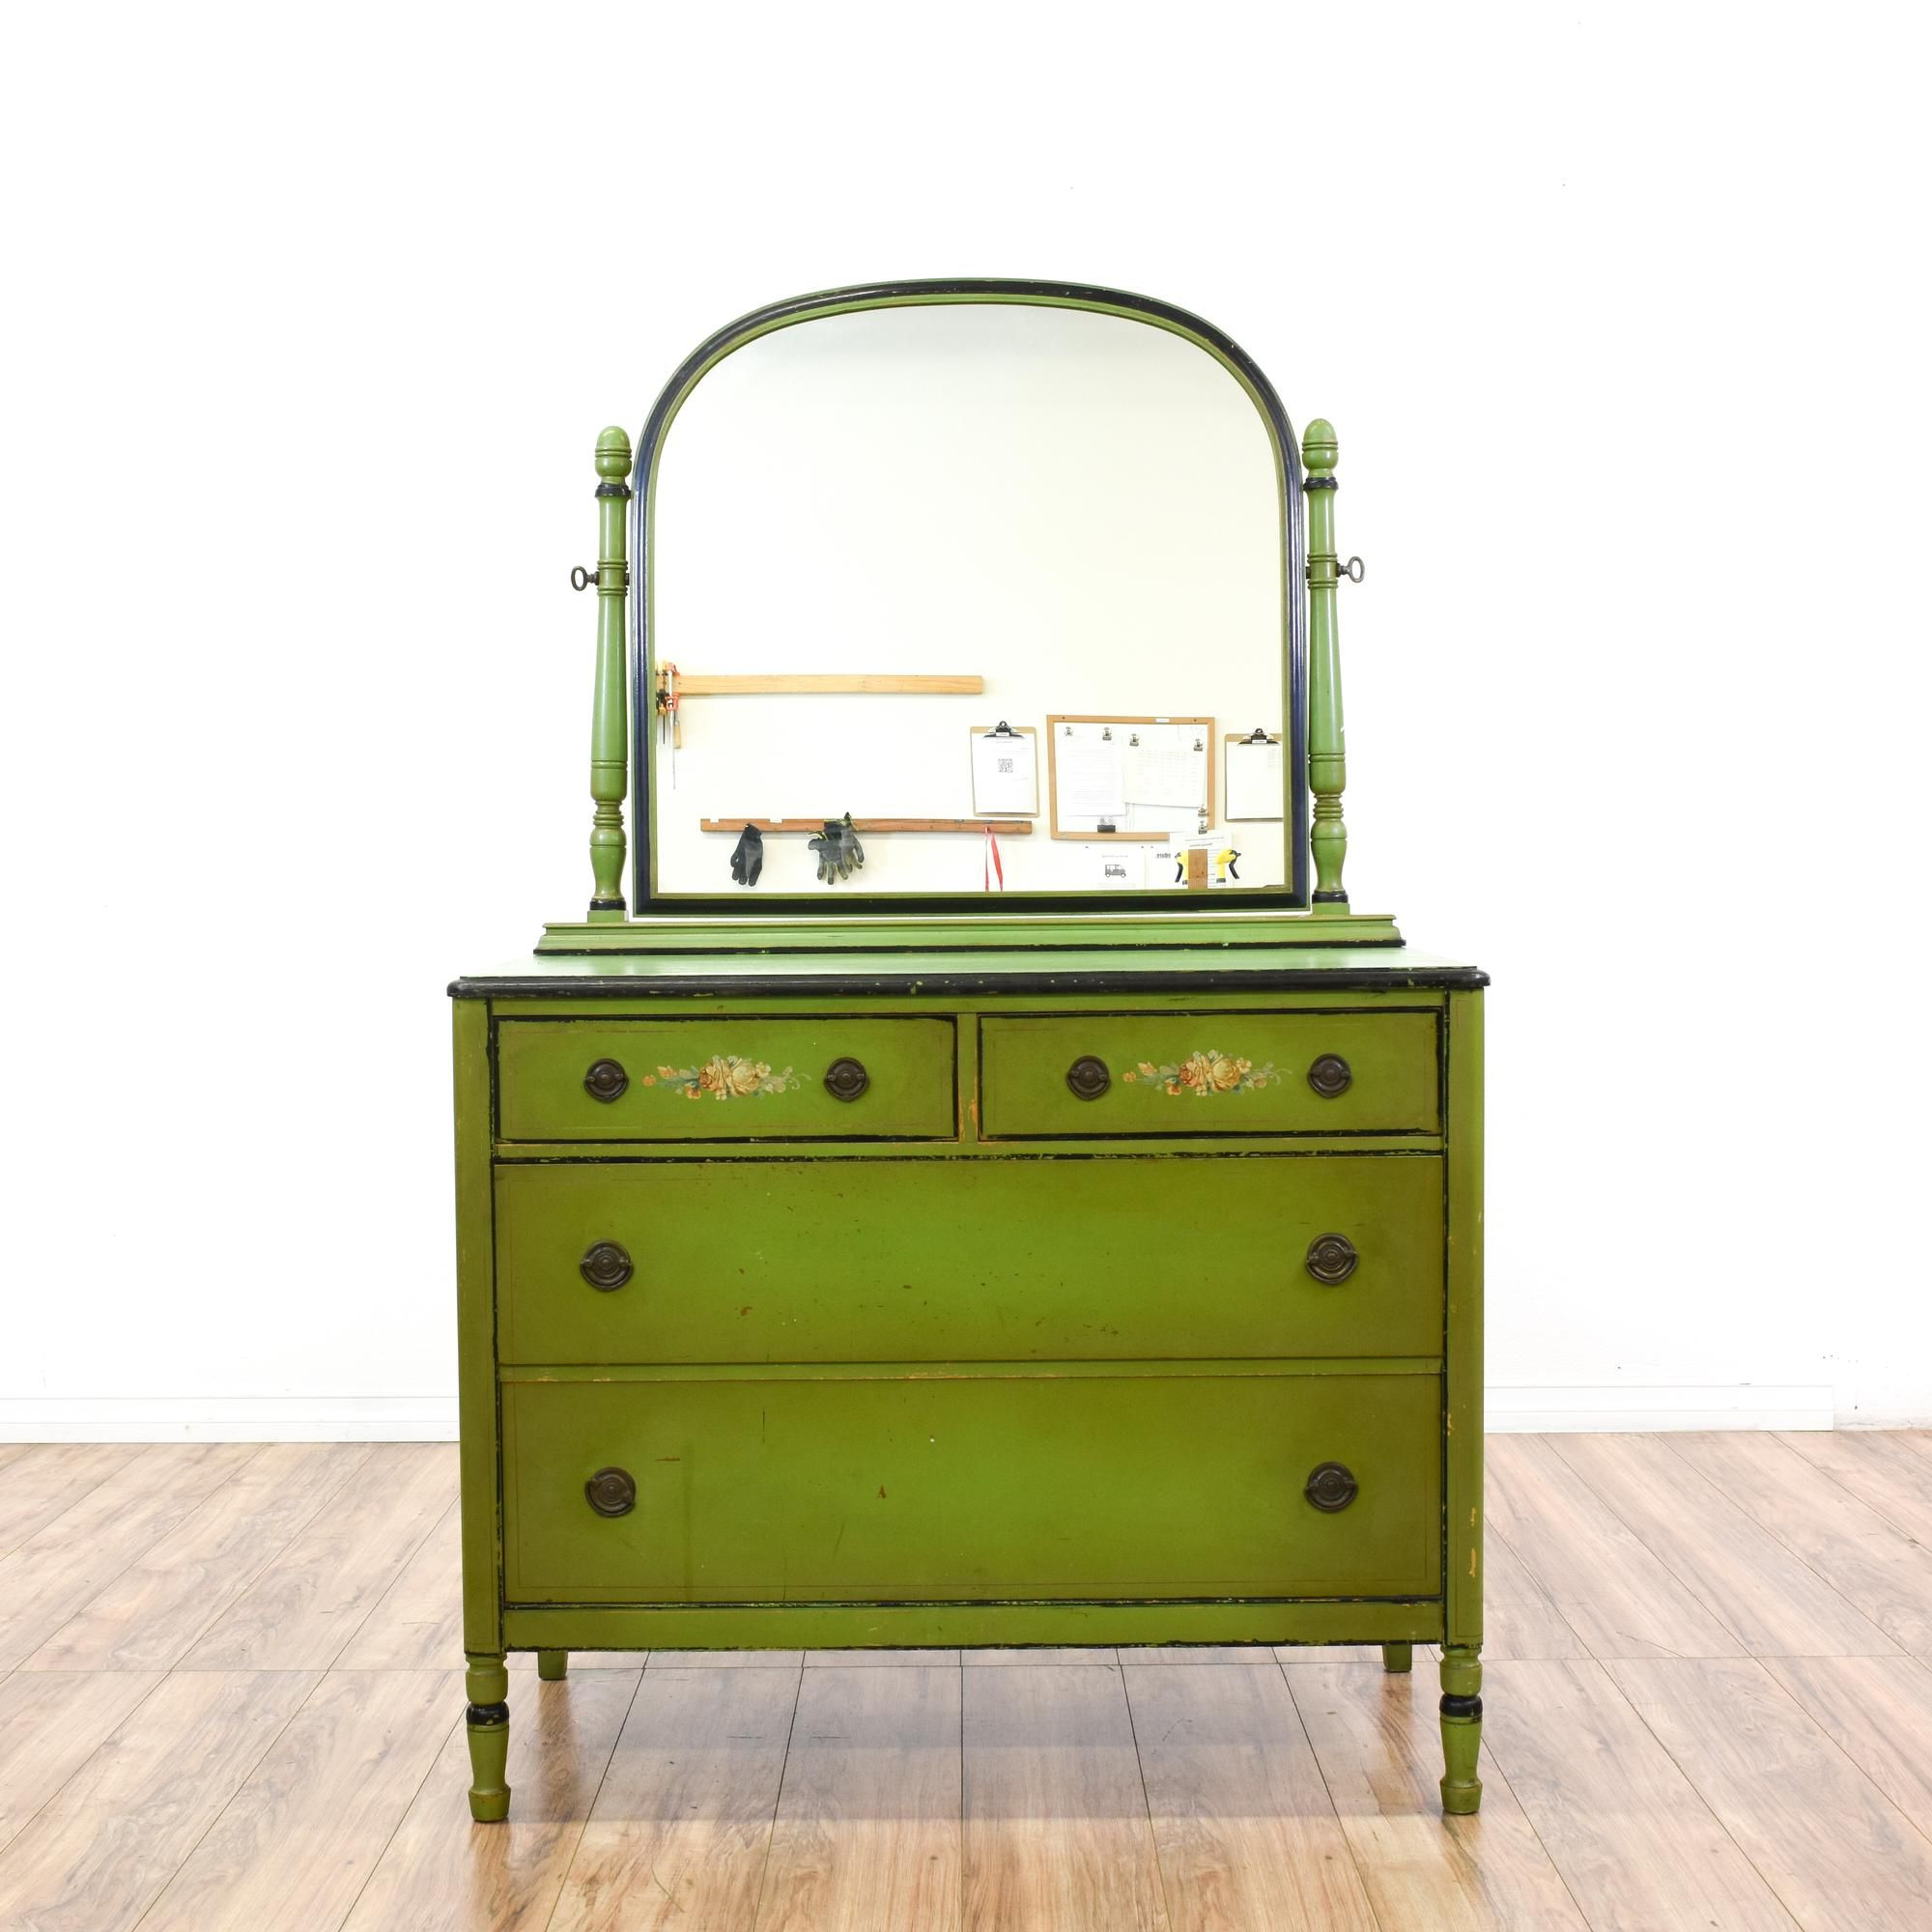 This Luce Furniture Antique Dresser Is Featured In A Solid Wood With Distressed